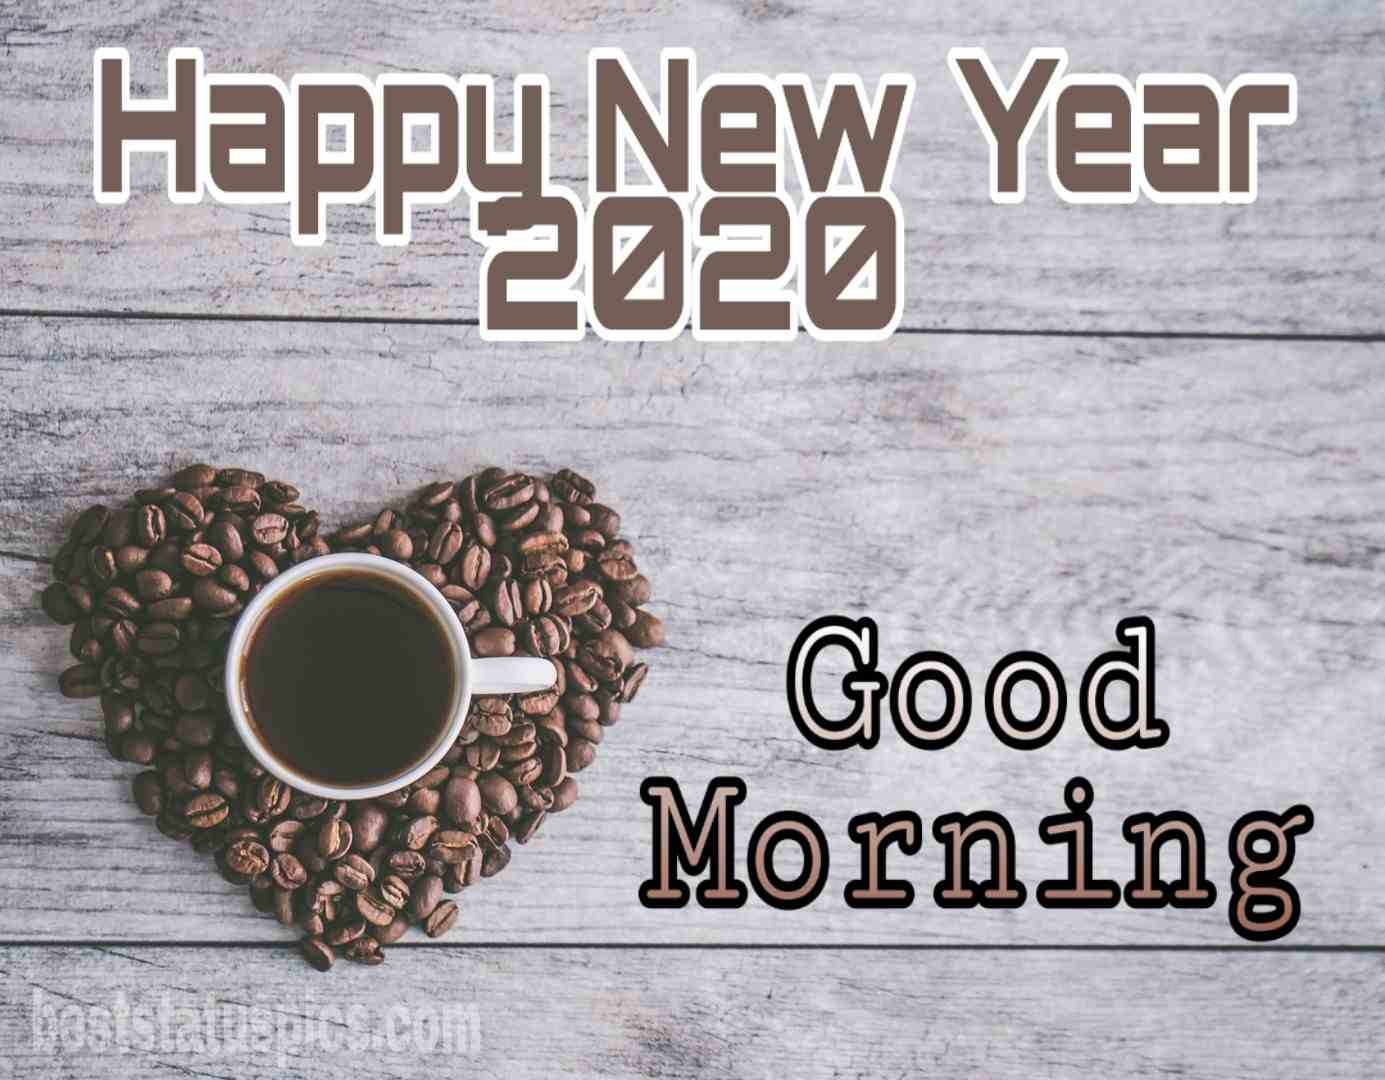 Good morning happy new year 2020 with love coffee